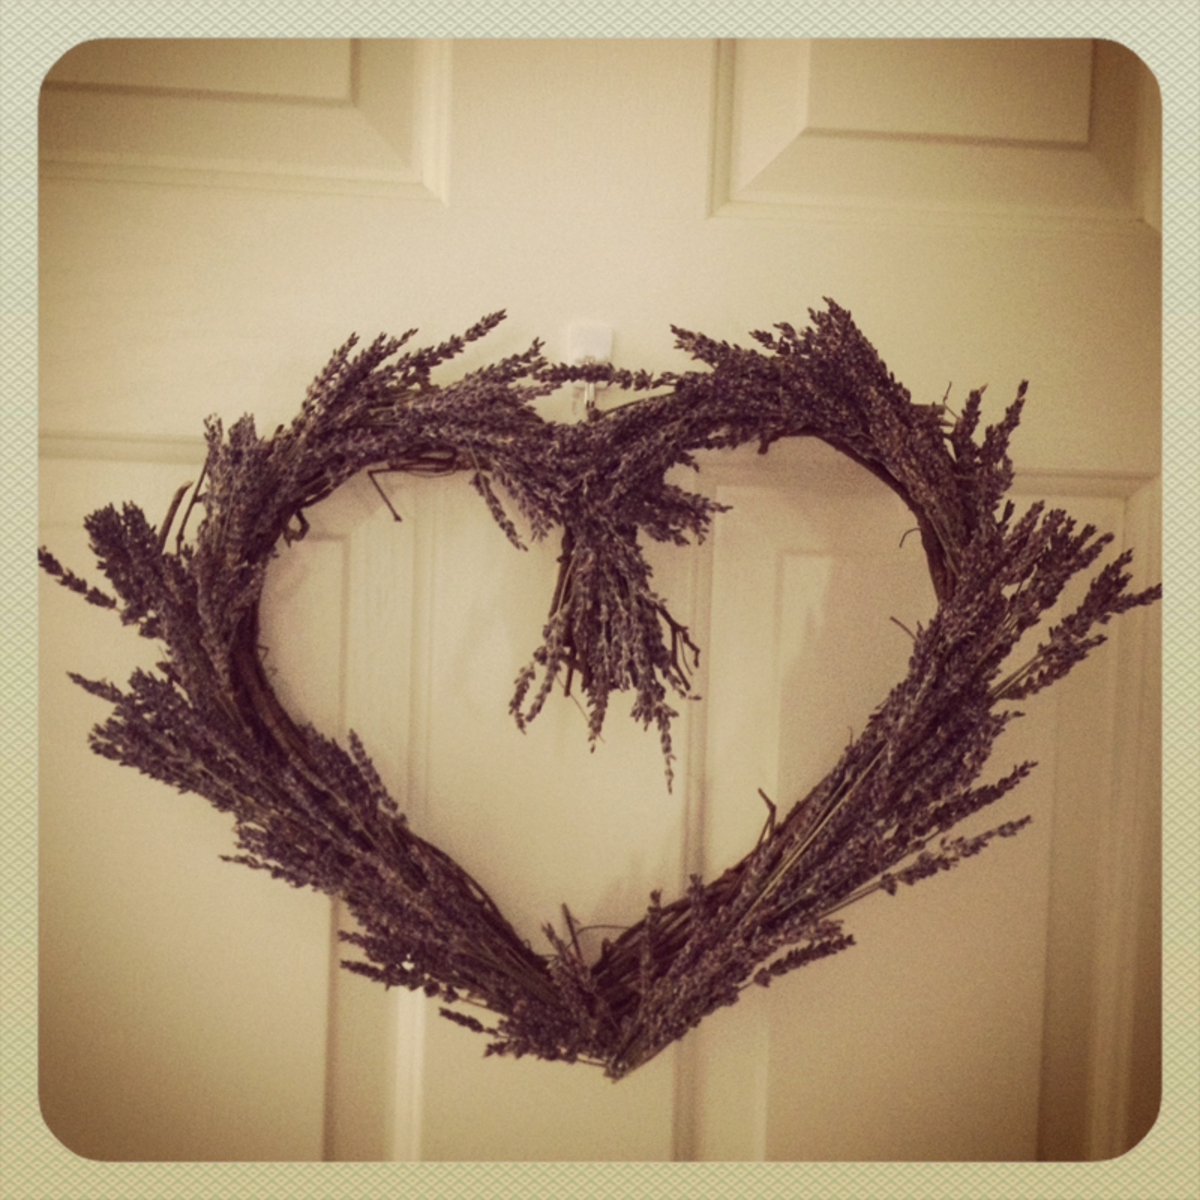 My finished lavender wreath hanging on the front door of my home.